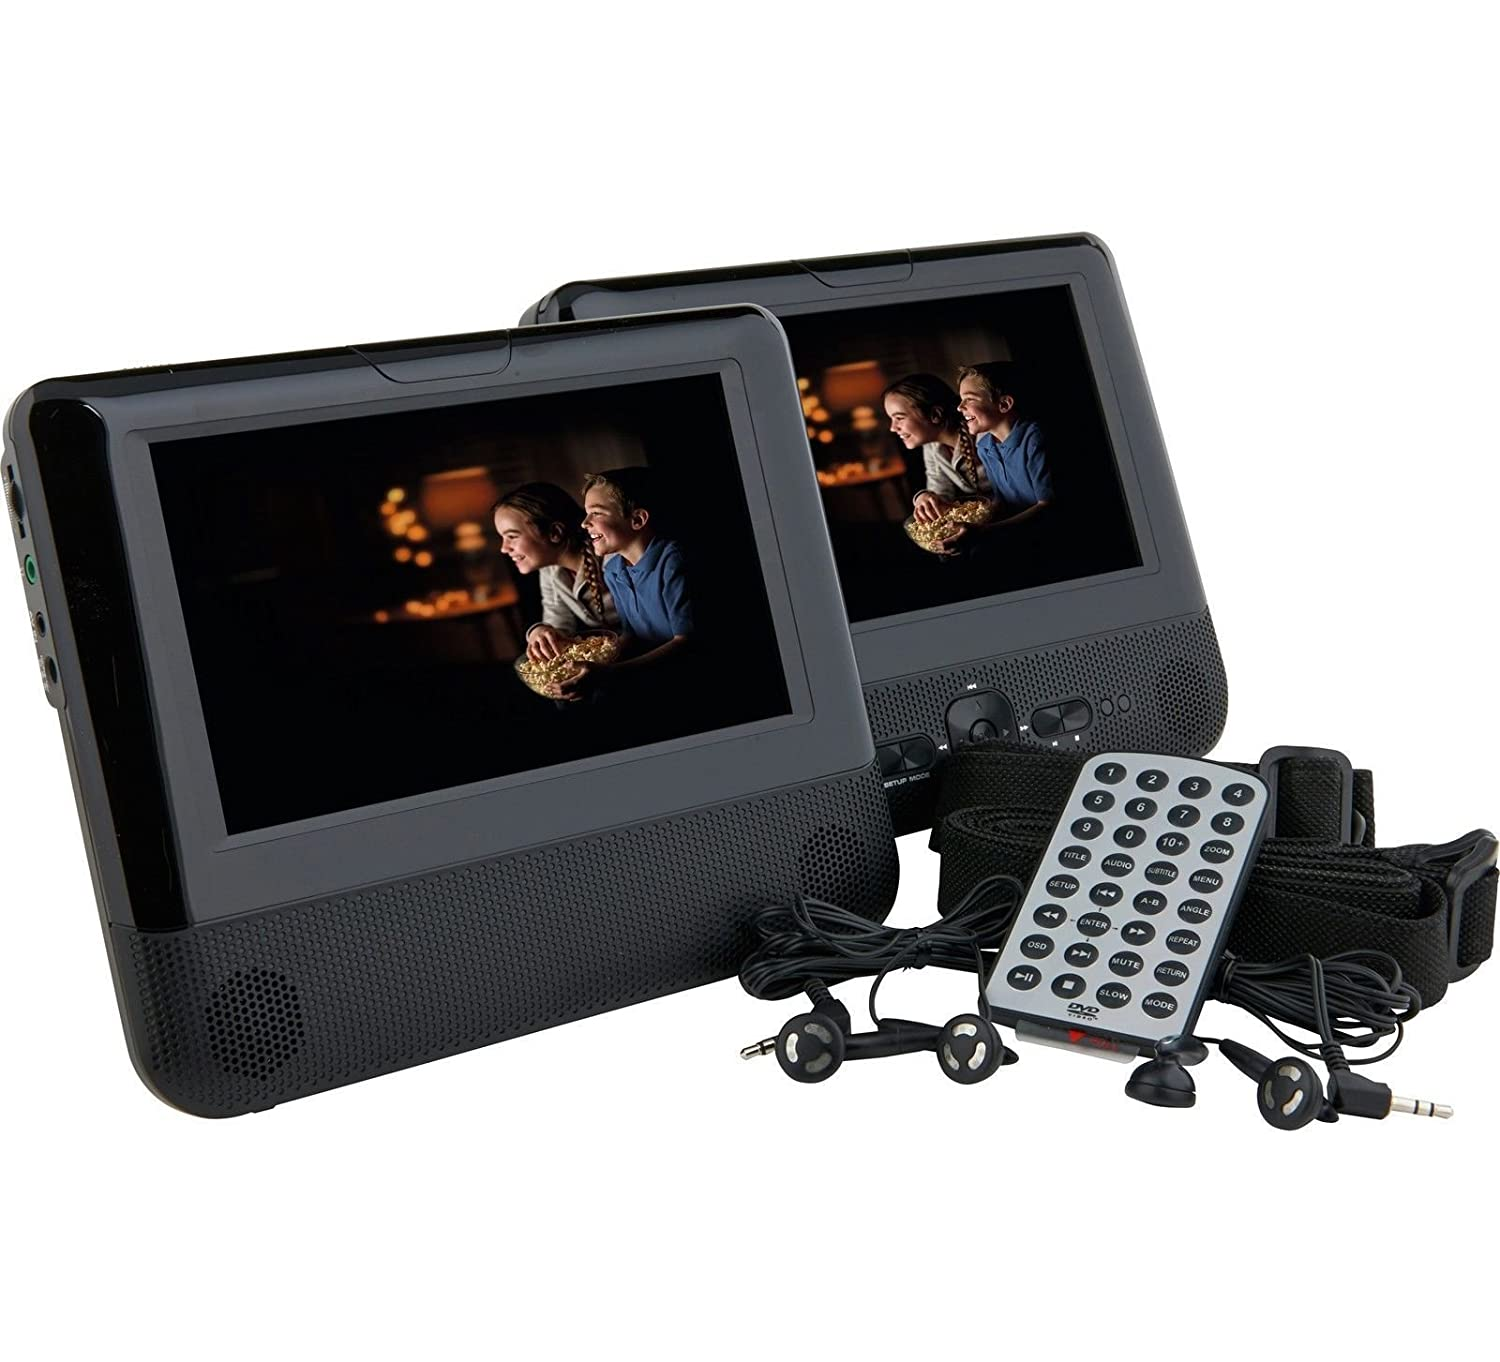 Bush 8737 twin screen car dvd player includes amazon bush 8737 twin screen car dvd player includes amazon electronics publicscrutiny Image collections